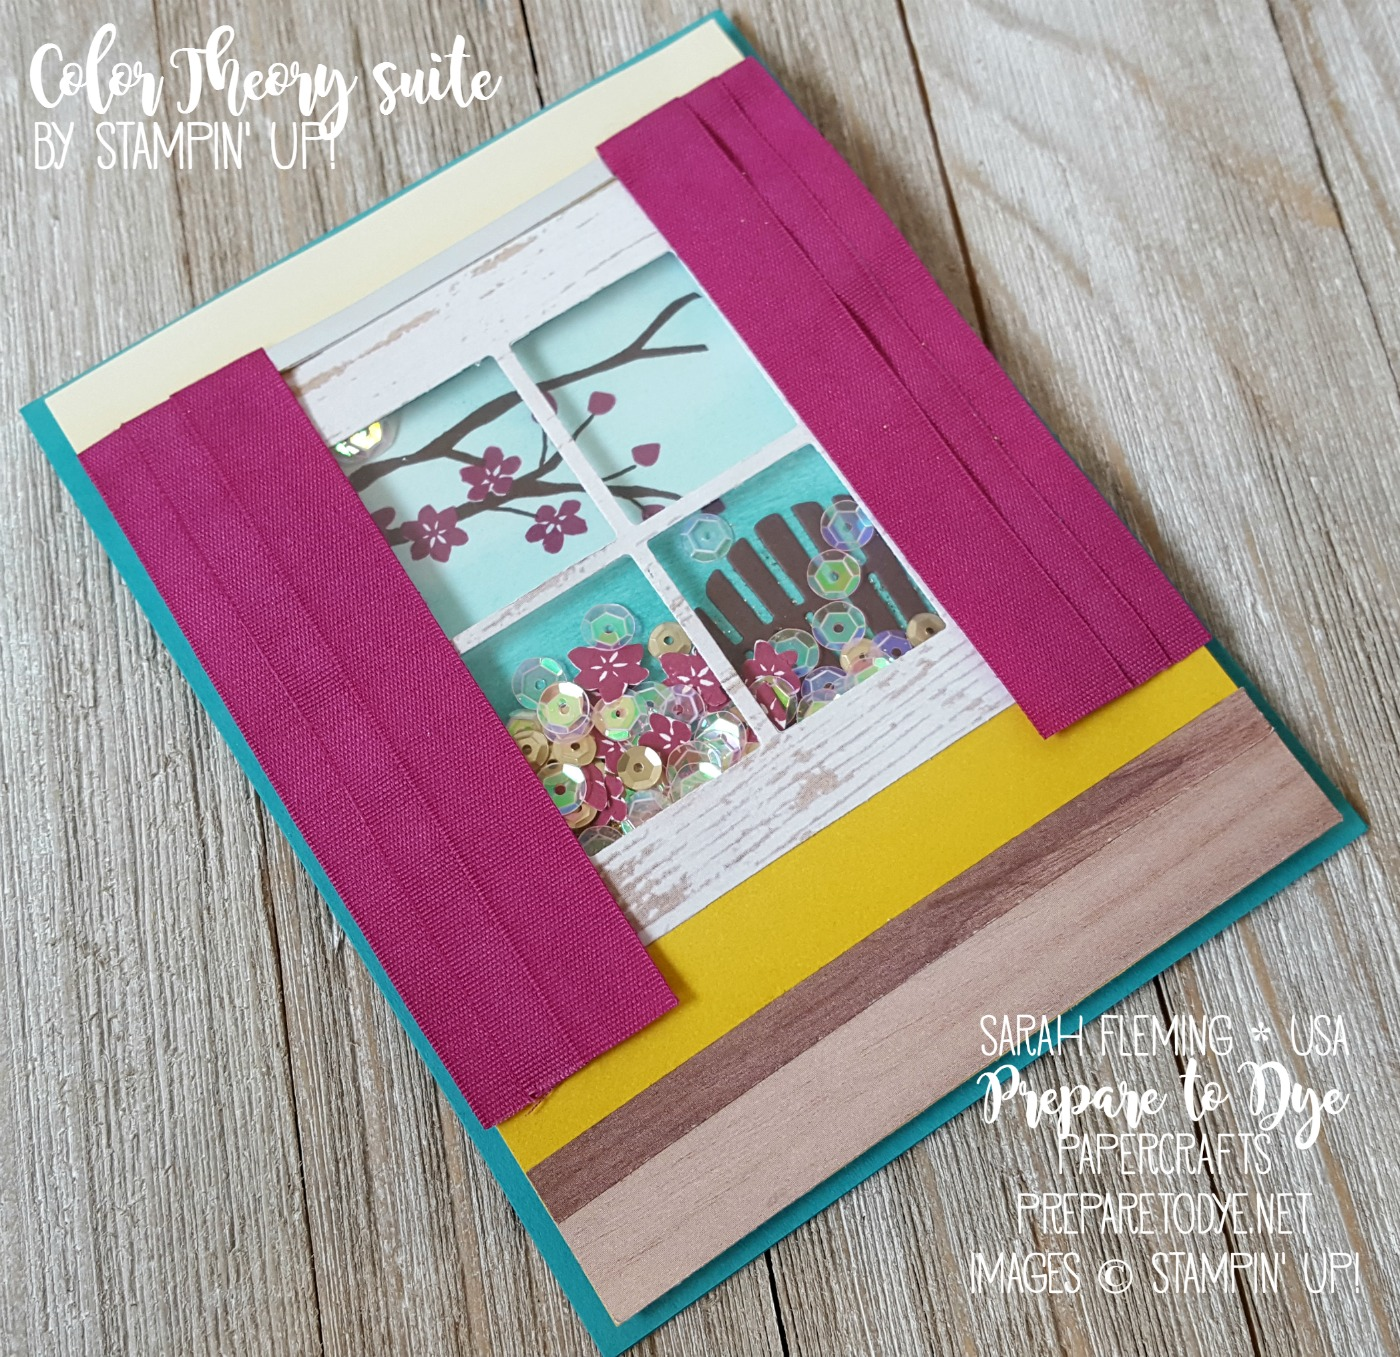 Stampin' Up! Colorful Seasons bundle with Color Theory and Wood Texture papers - shaker card - handmade retirement card - Sarah Fleming - Prepare to Dye Papercrafts